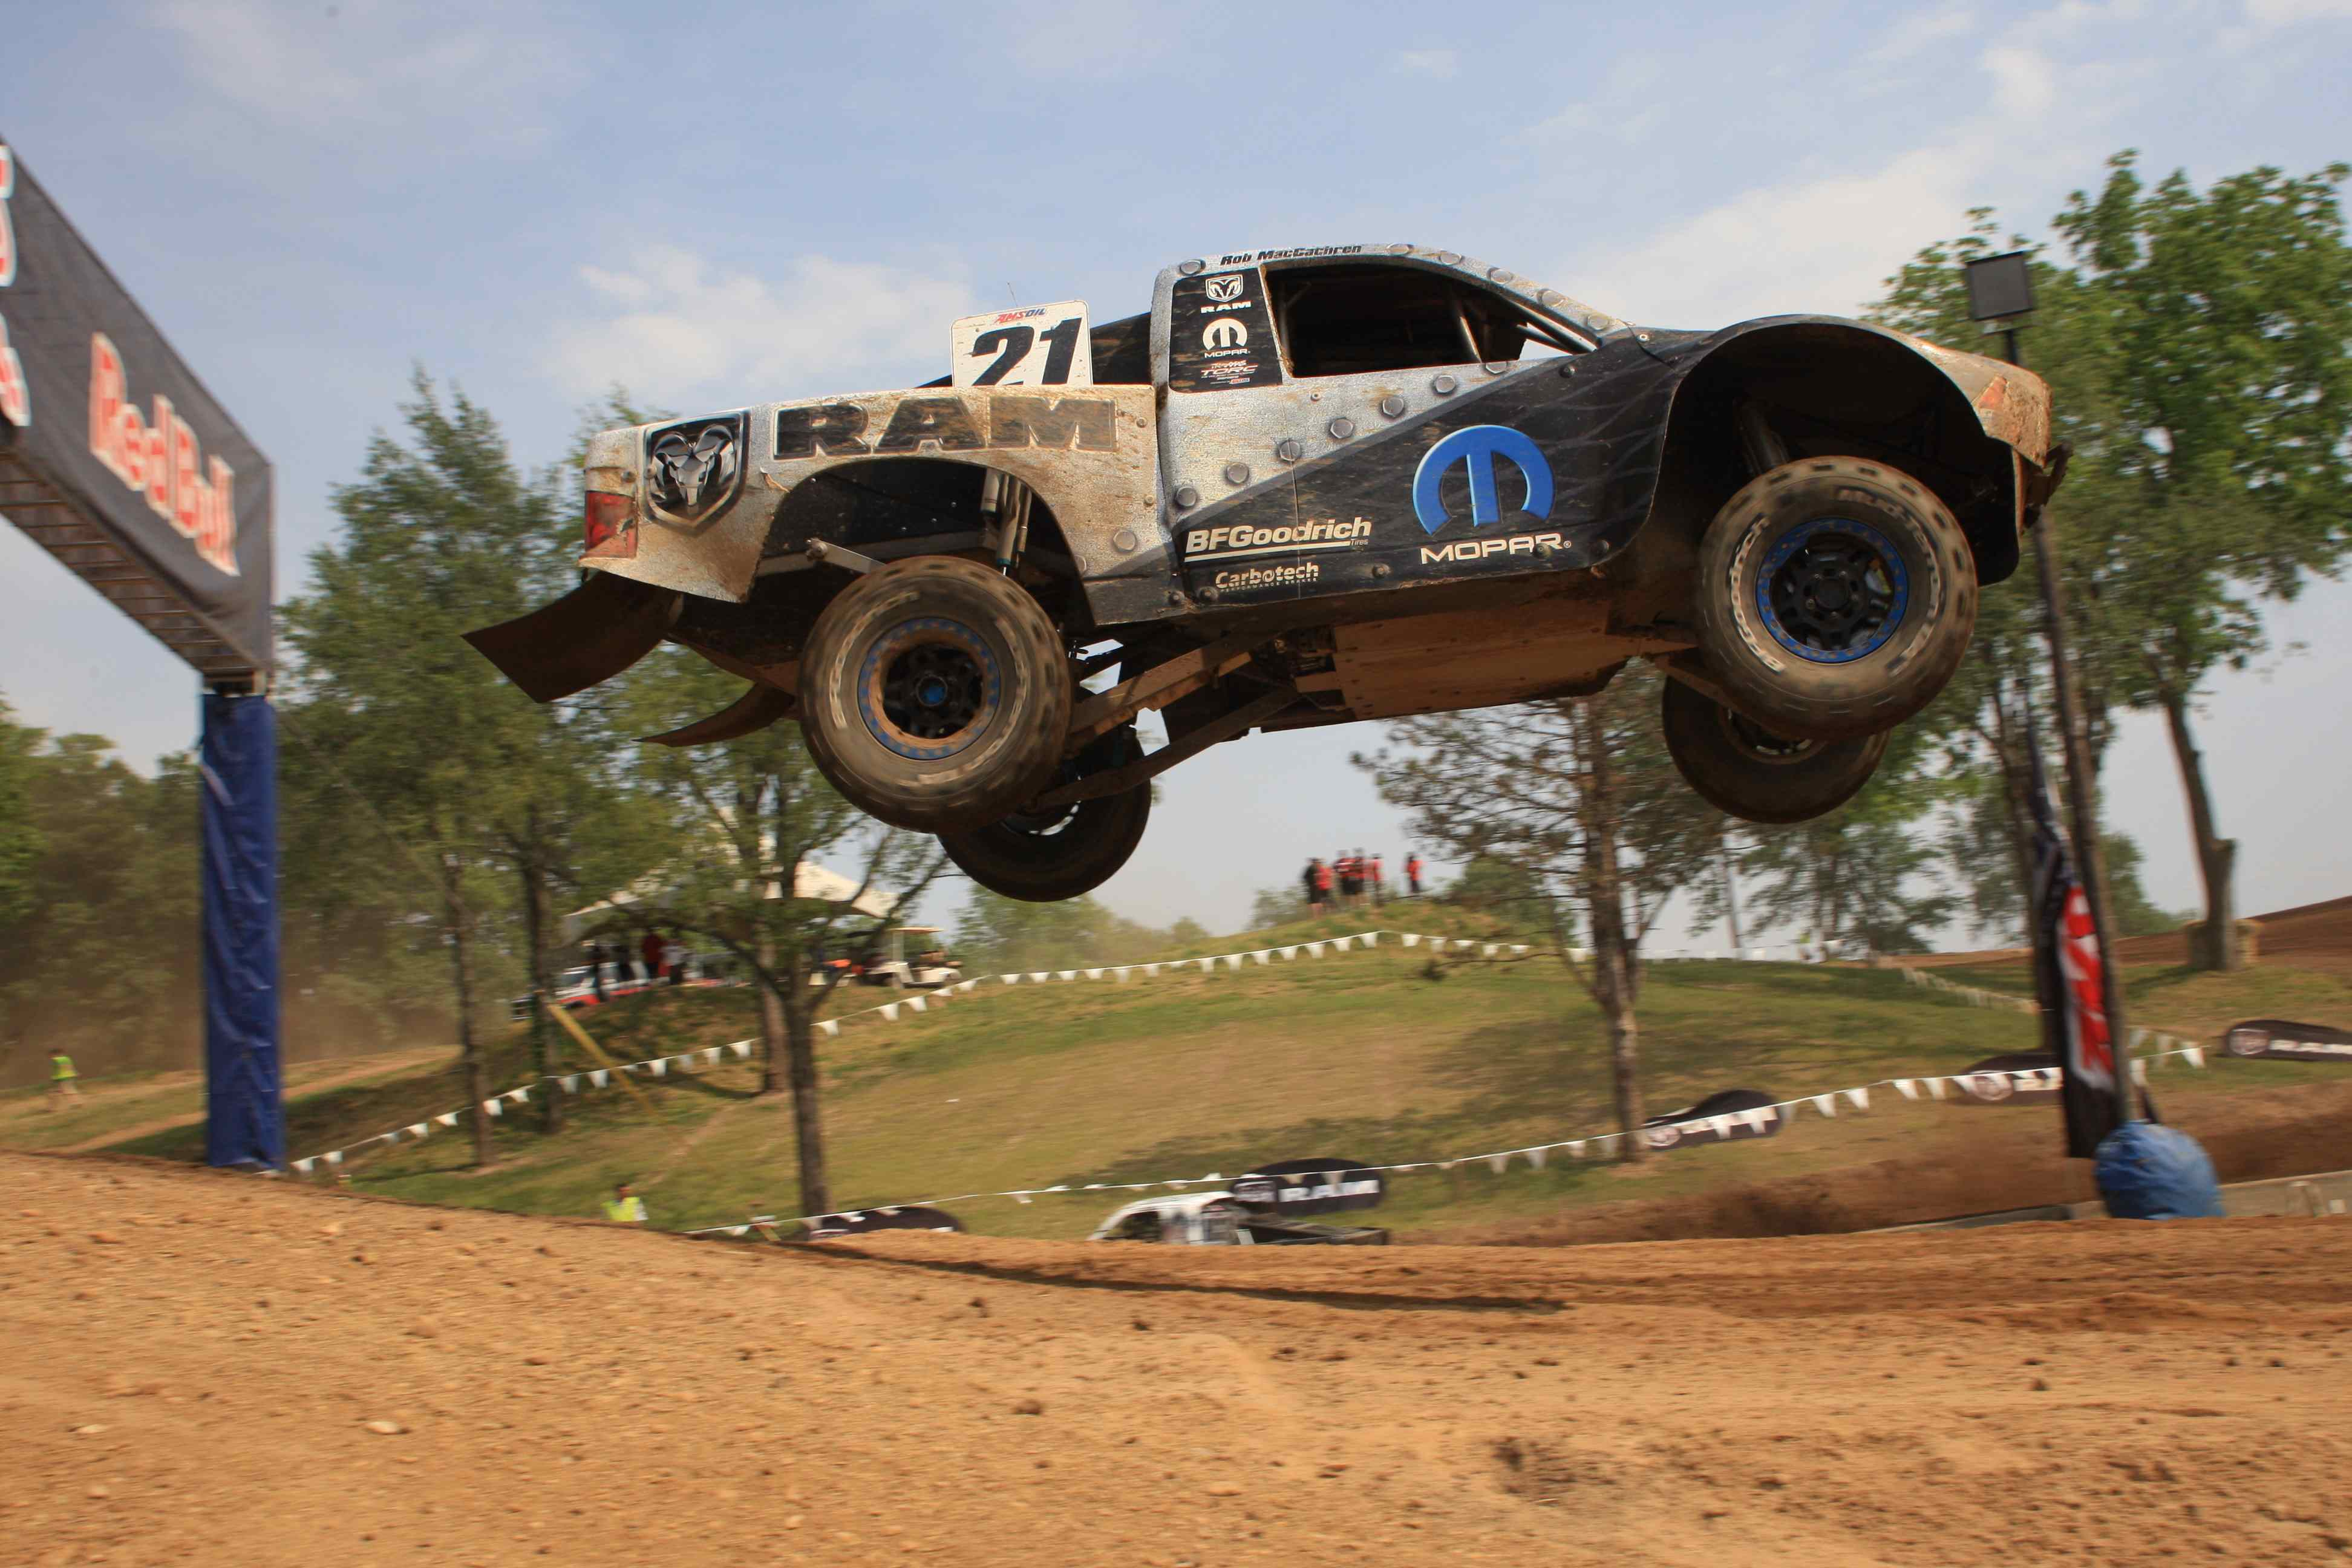 Traxxas drivers made up nearly a third of the field with three 900hp race trucks looking for